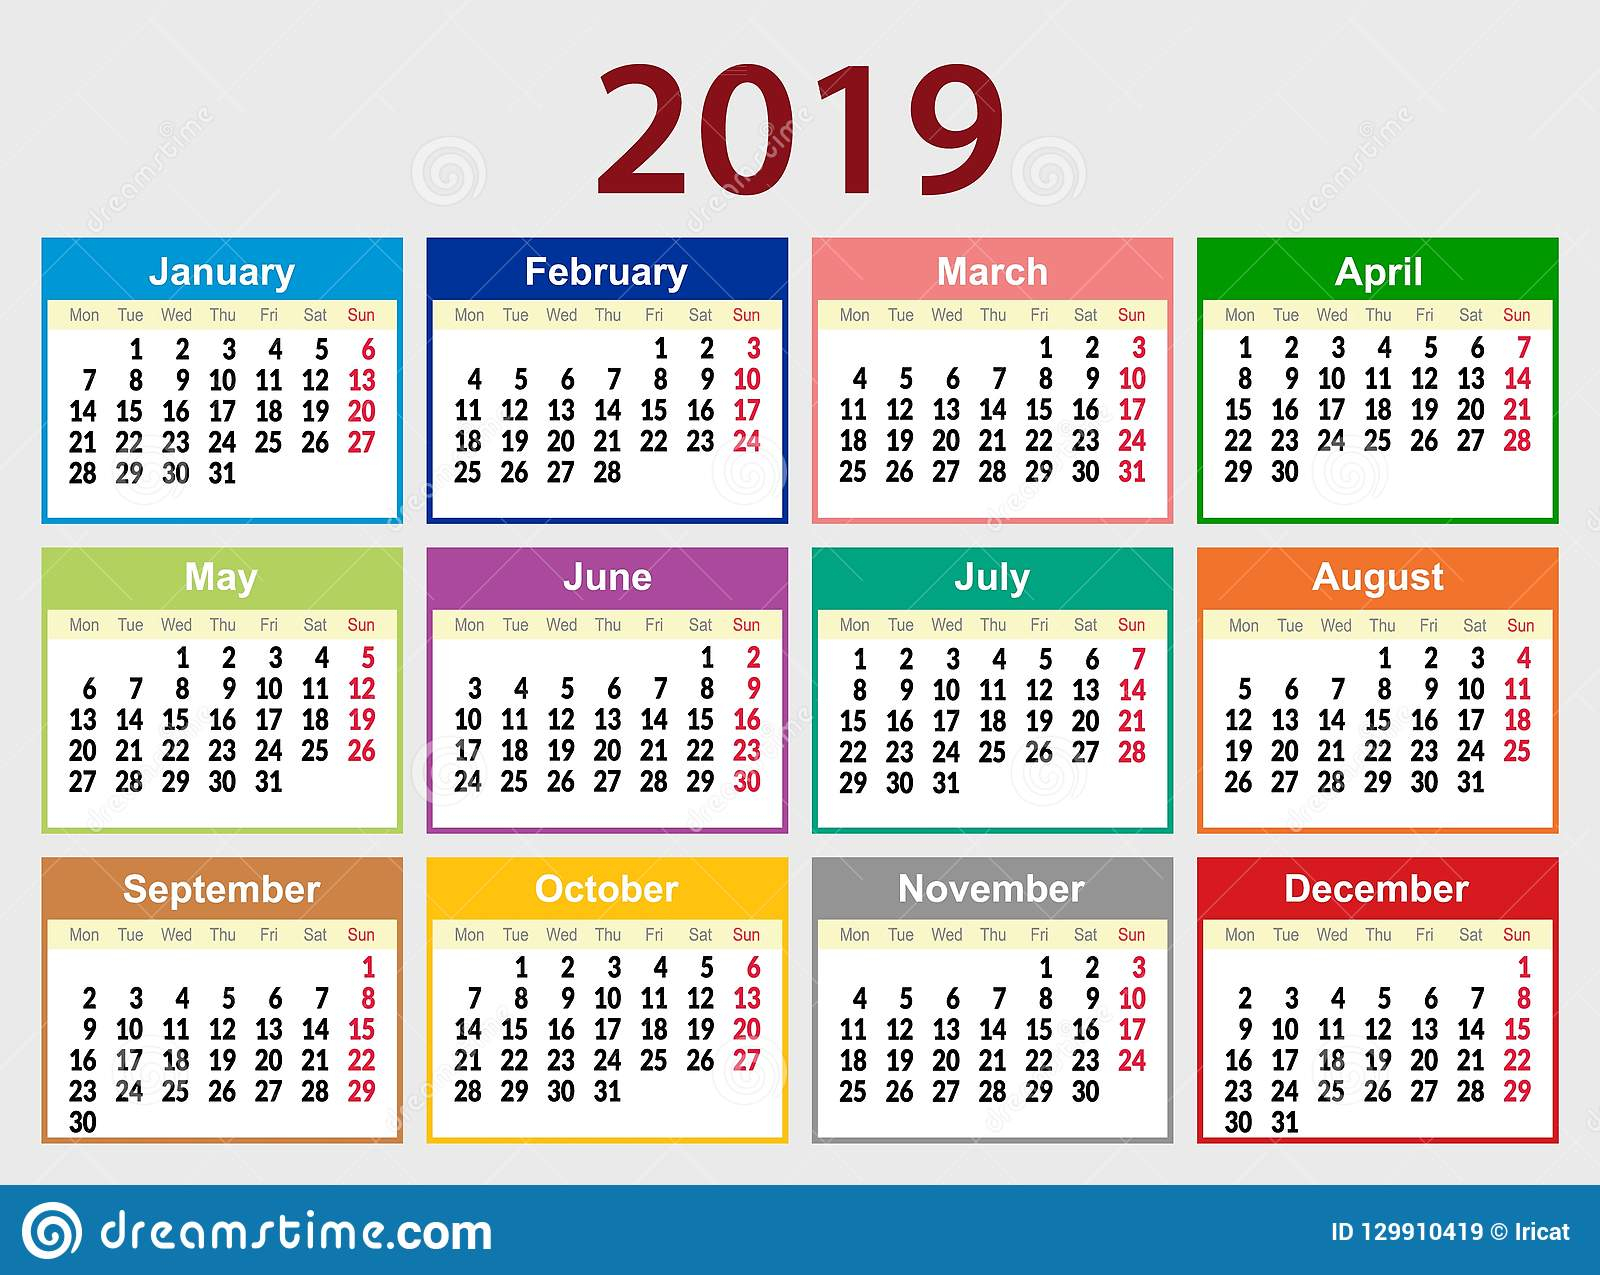 Multicolored Calendar Grid For 2019 In English. The Week